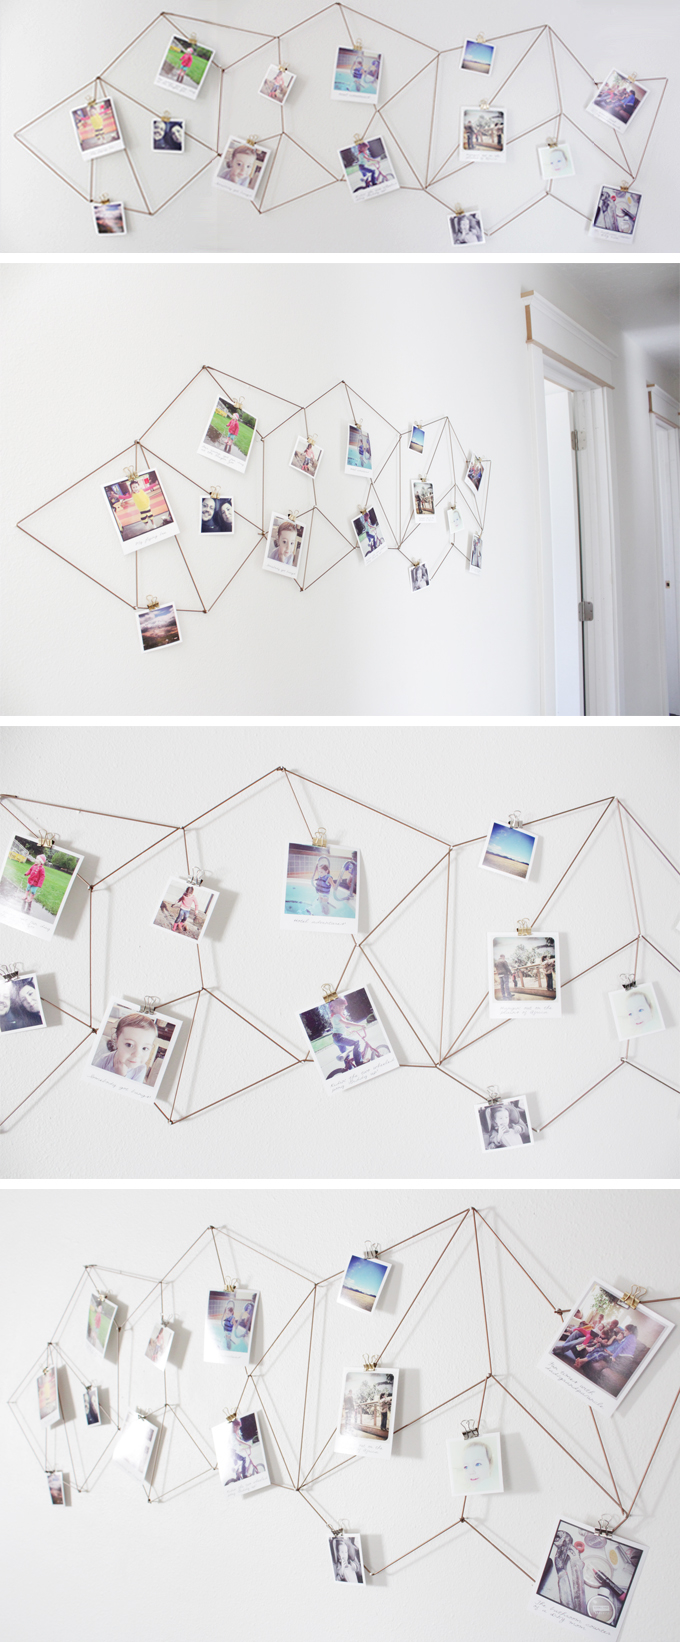 Geometric photo display pictures photos and images for - Fil pour accrocher des photos ...